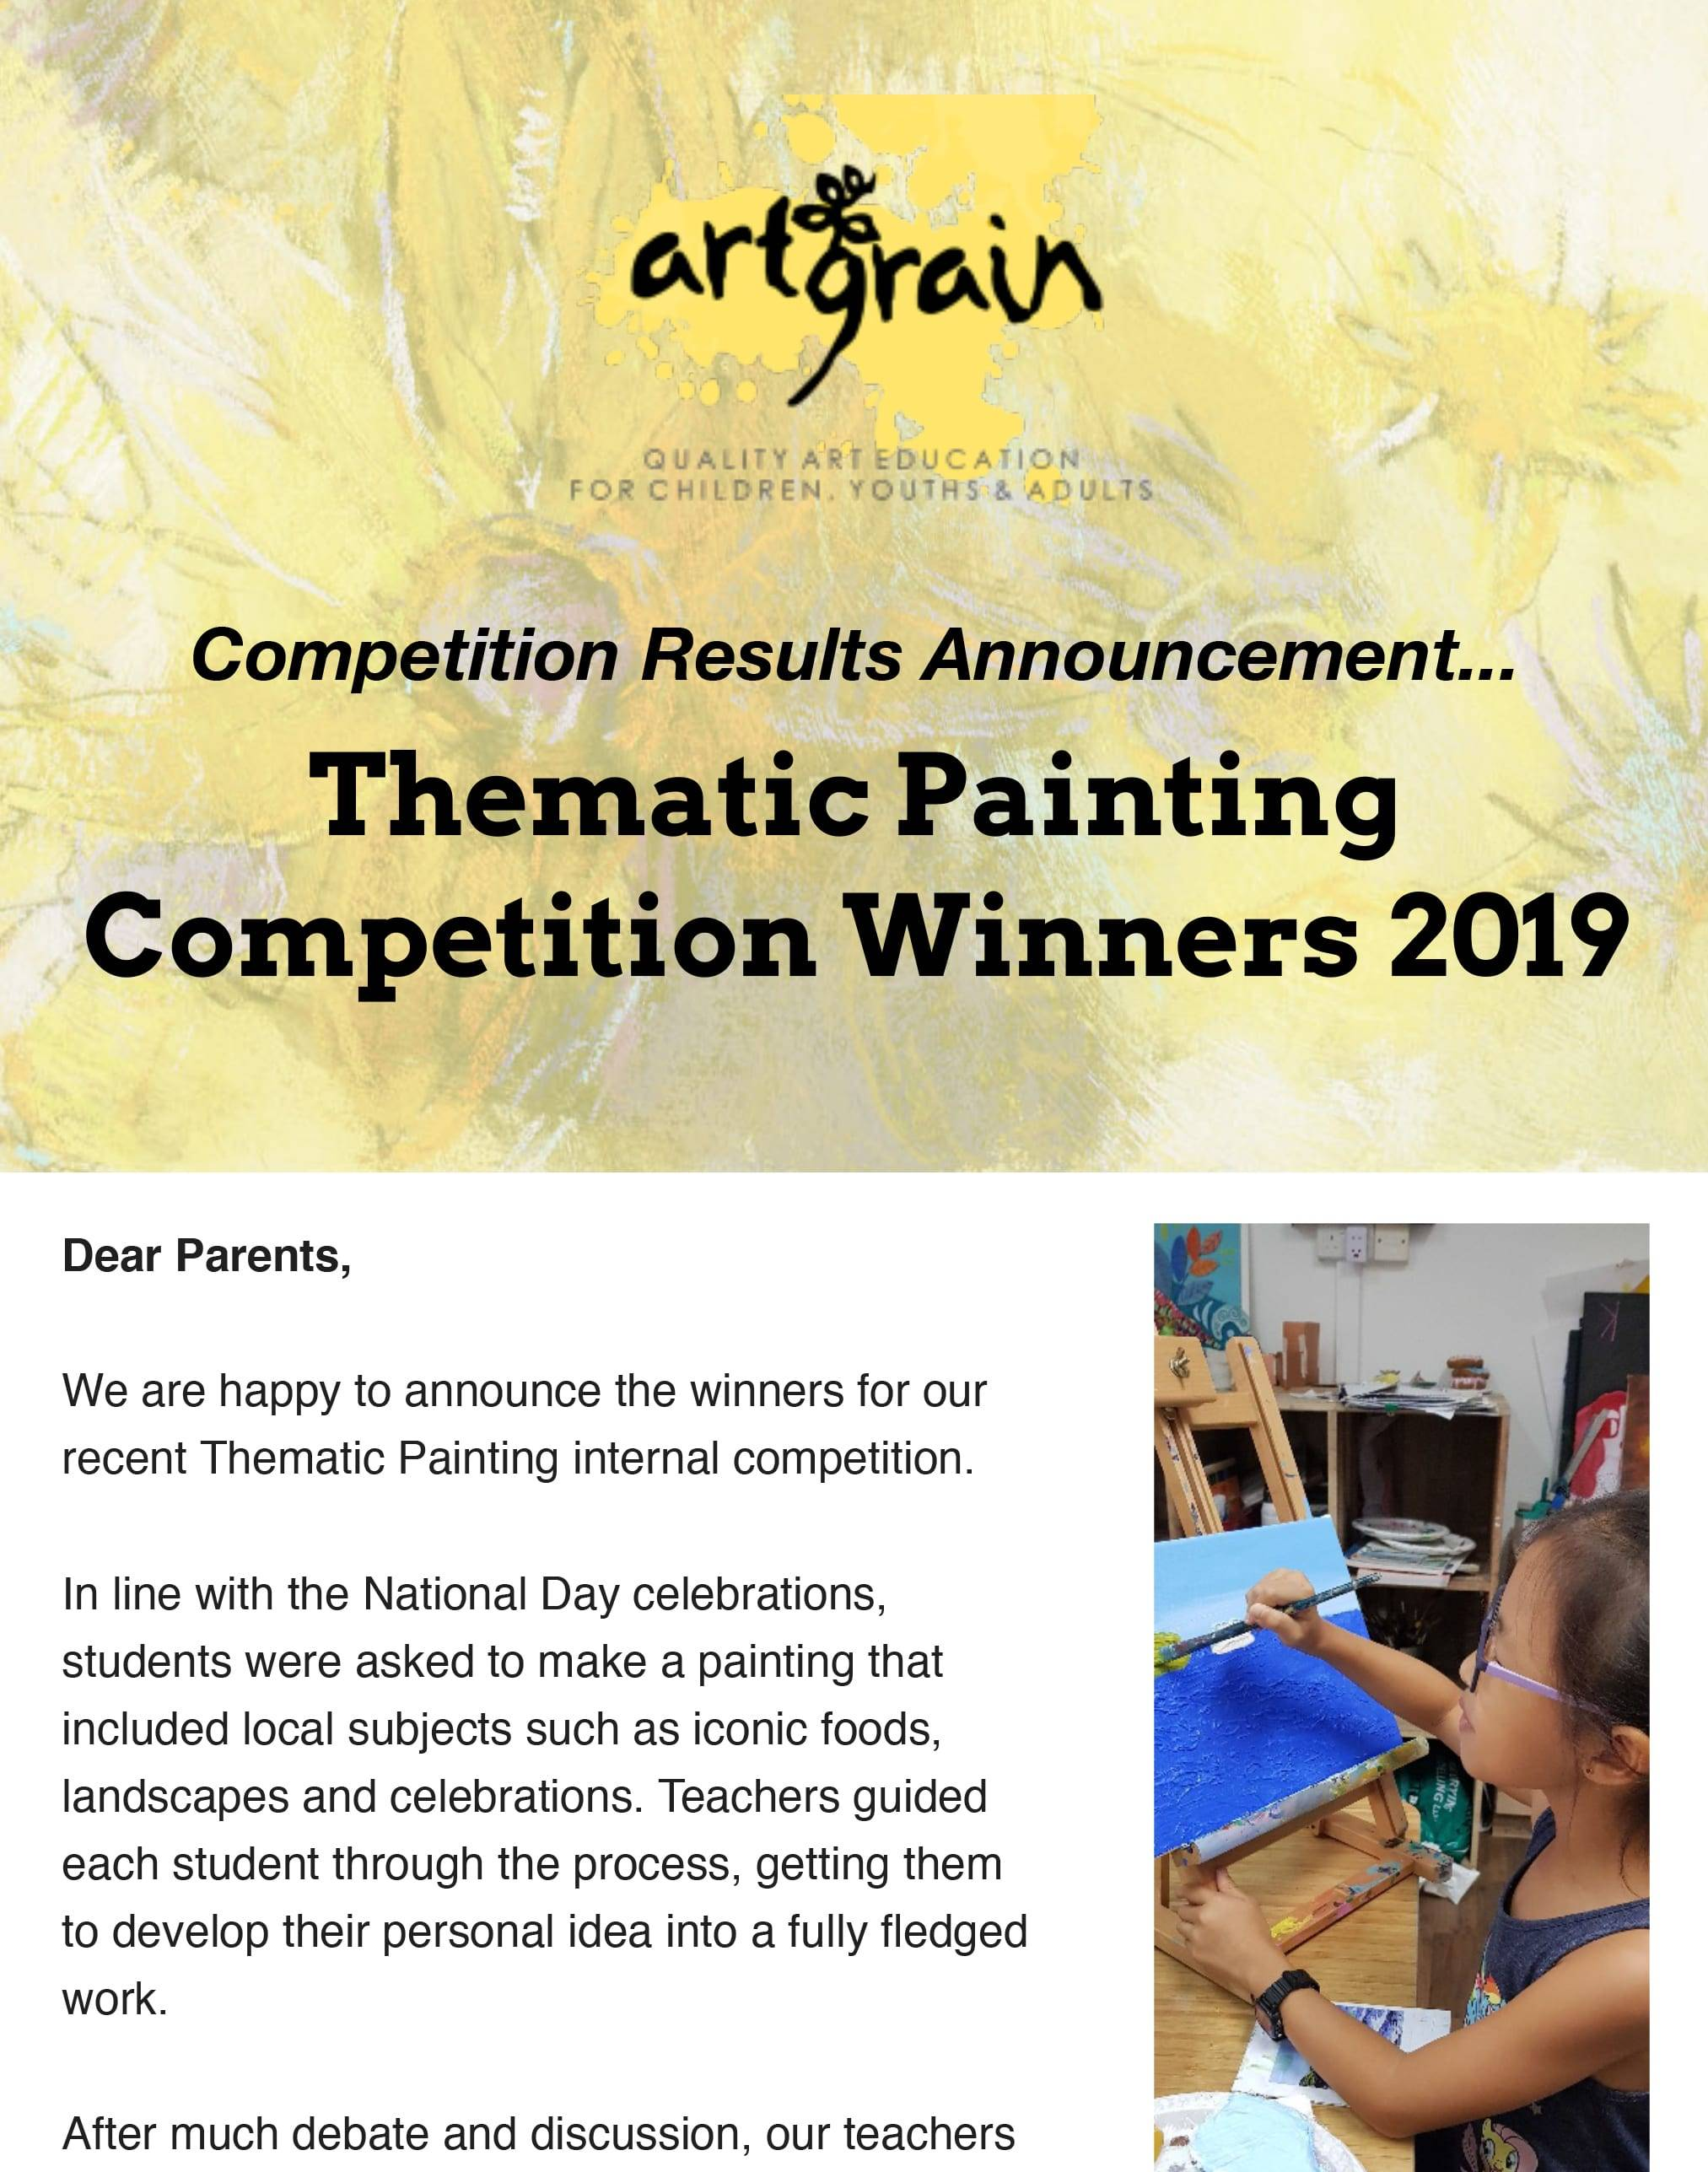 Thematic Painting Competition Winners 2019